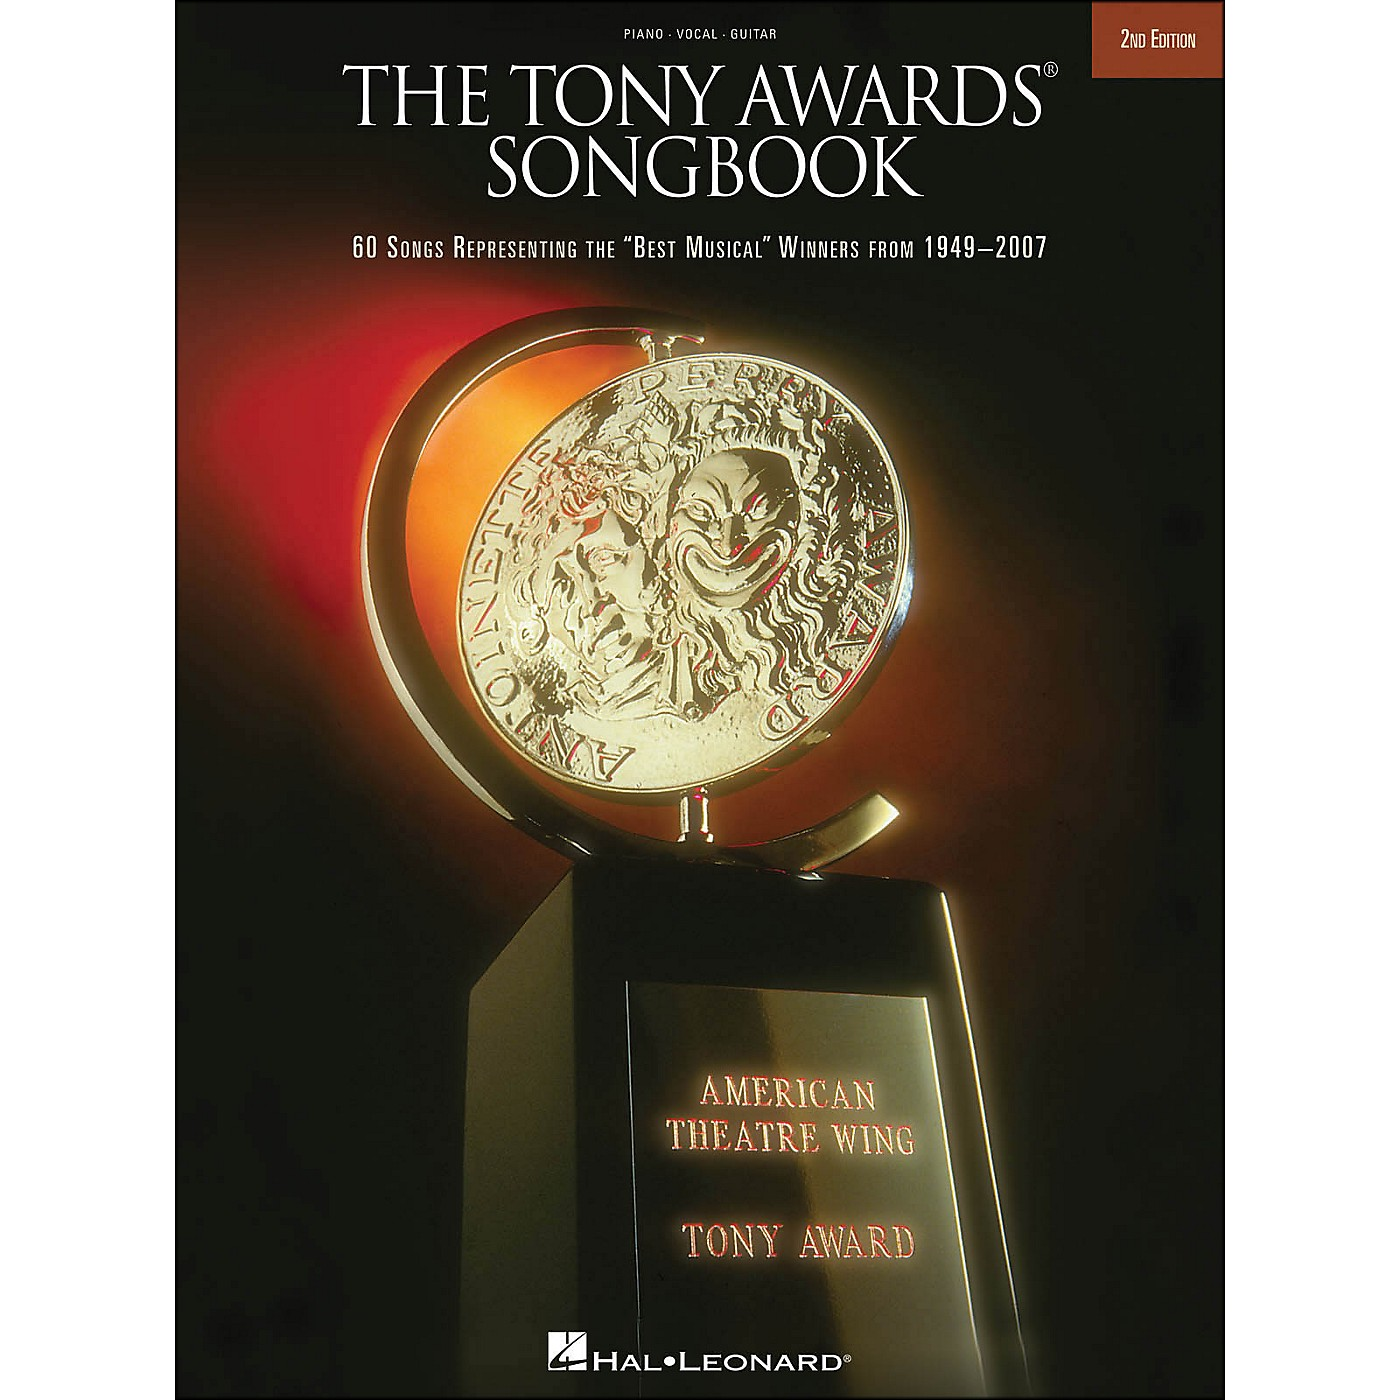 Hal Leonard The Tony Awards Songbook 2nd Edition arranged for piano, vocal, and guitar (P/V/G) thumbnail